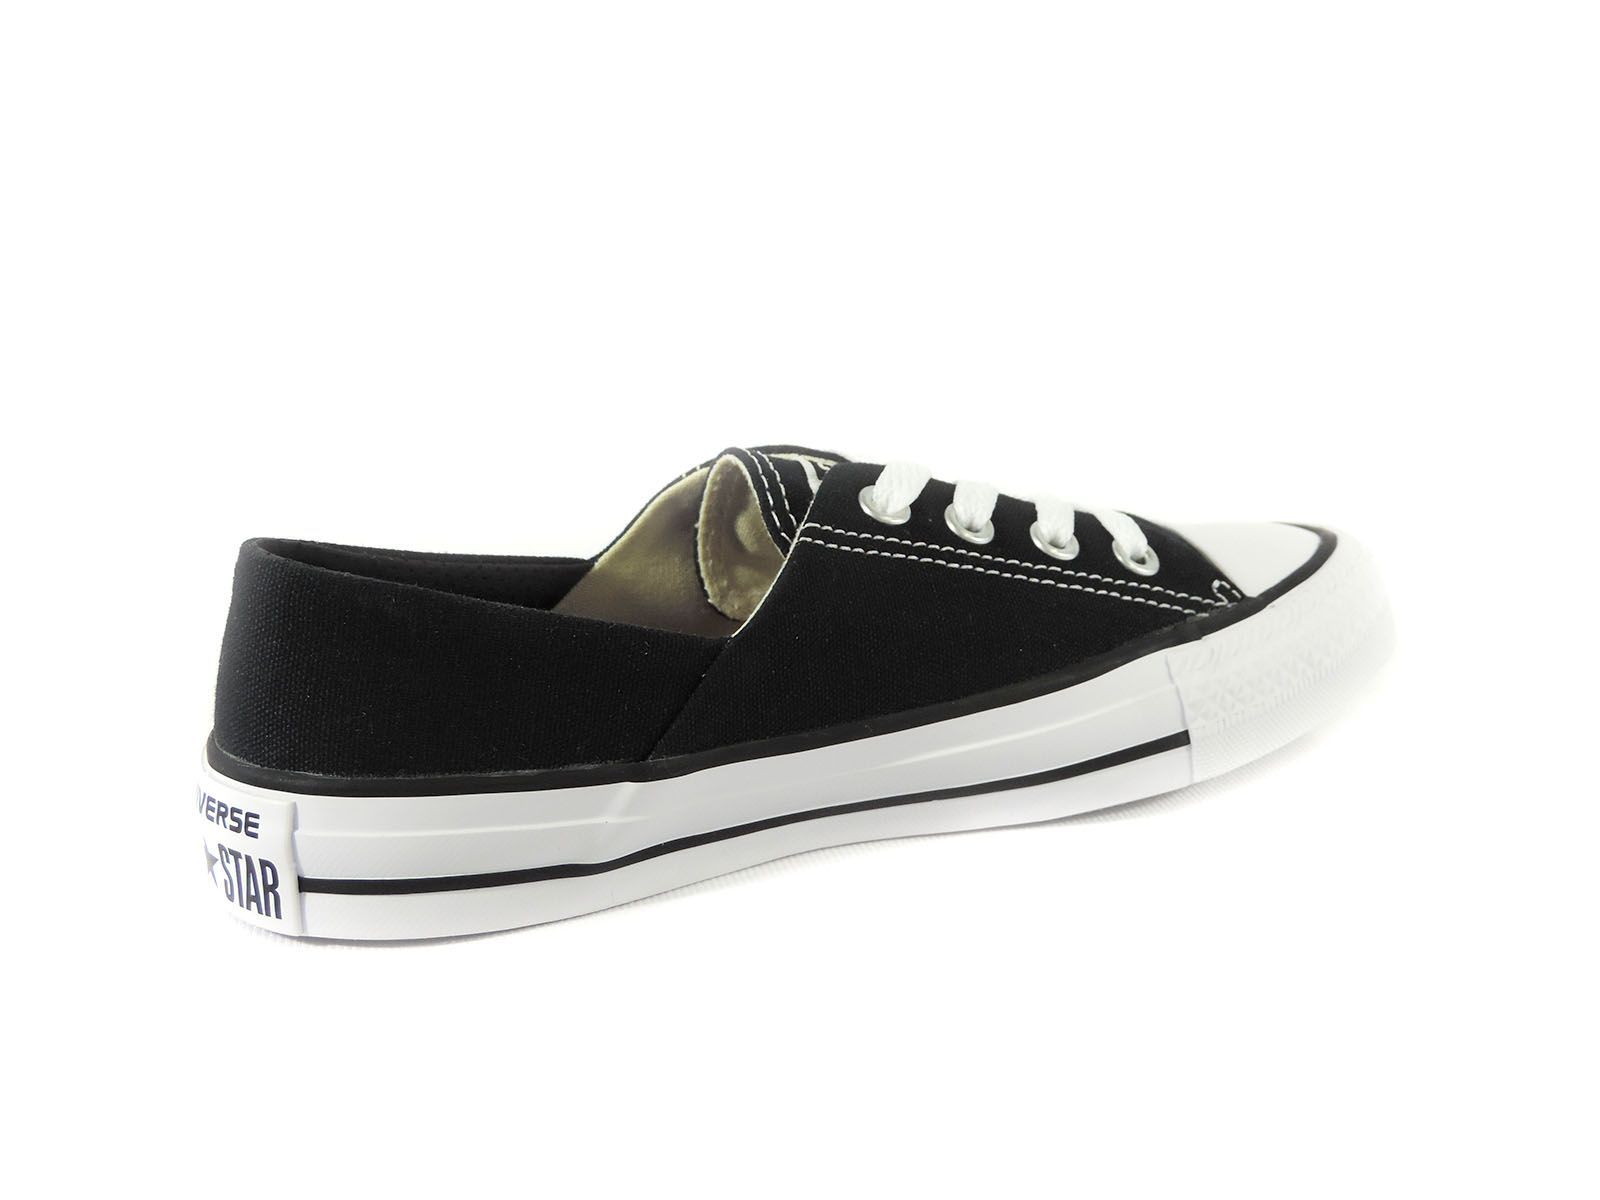 ... Converse Women s Chuck Taylor All Star Coral Ox - Got Your Shoes ... a01a74be2